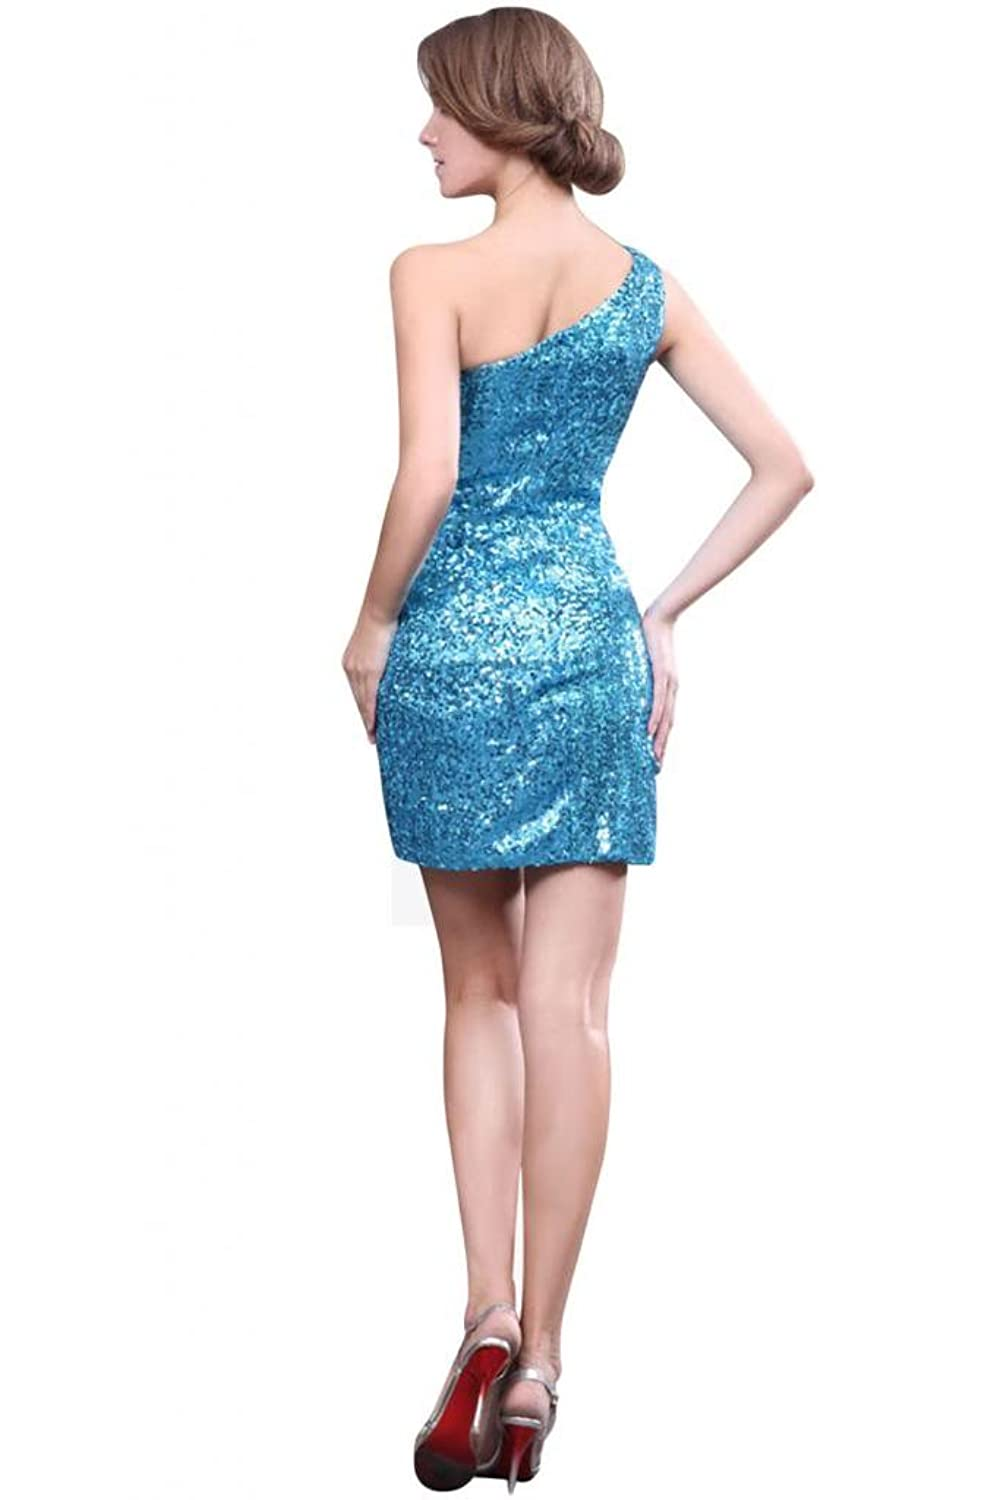 Sunvary 2014 New One Shoulder Mini Cocktail Party Dresses